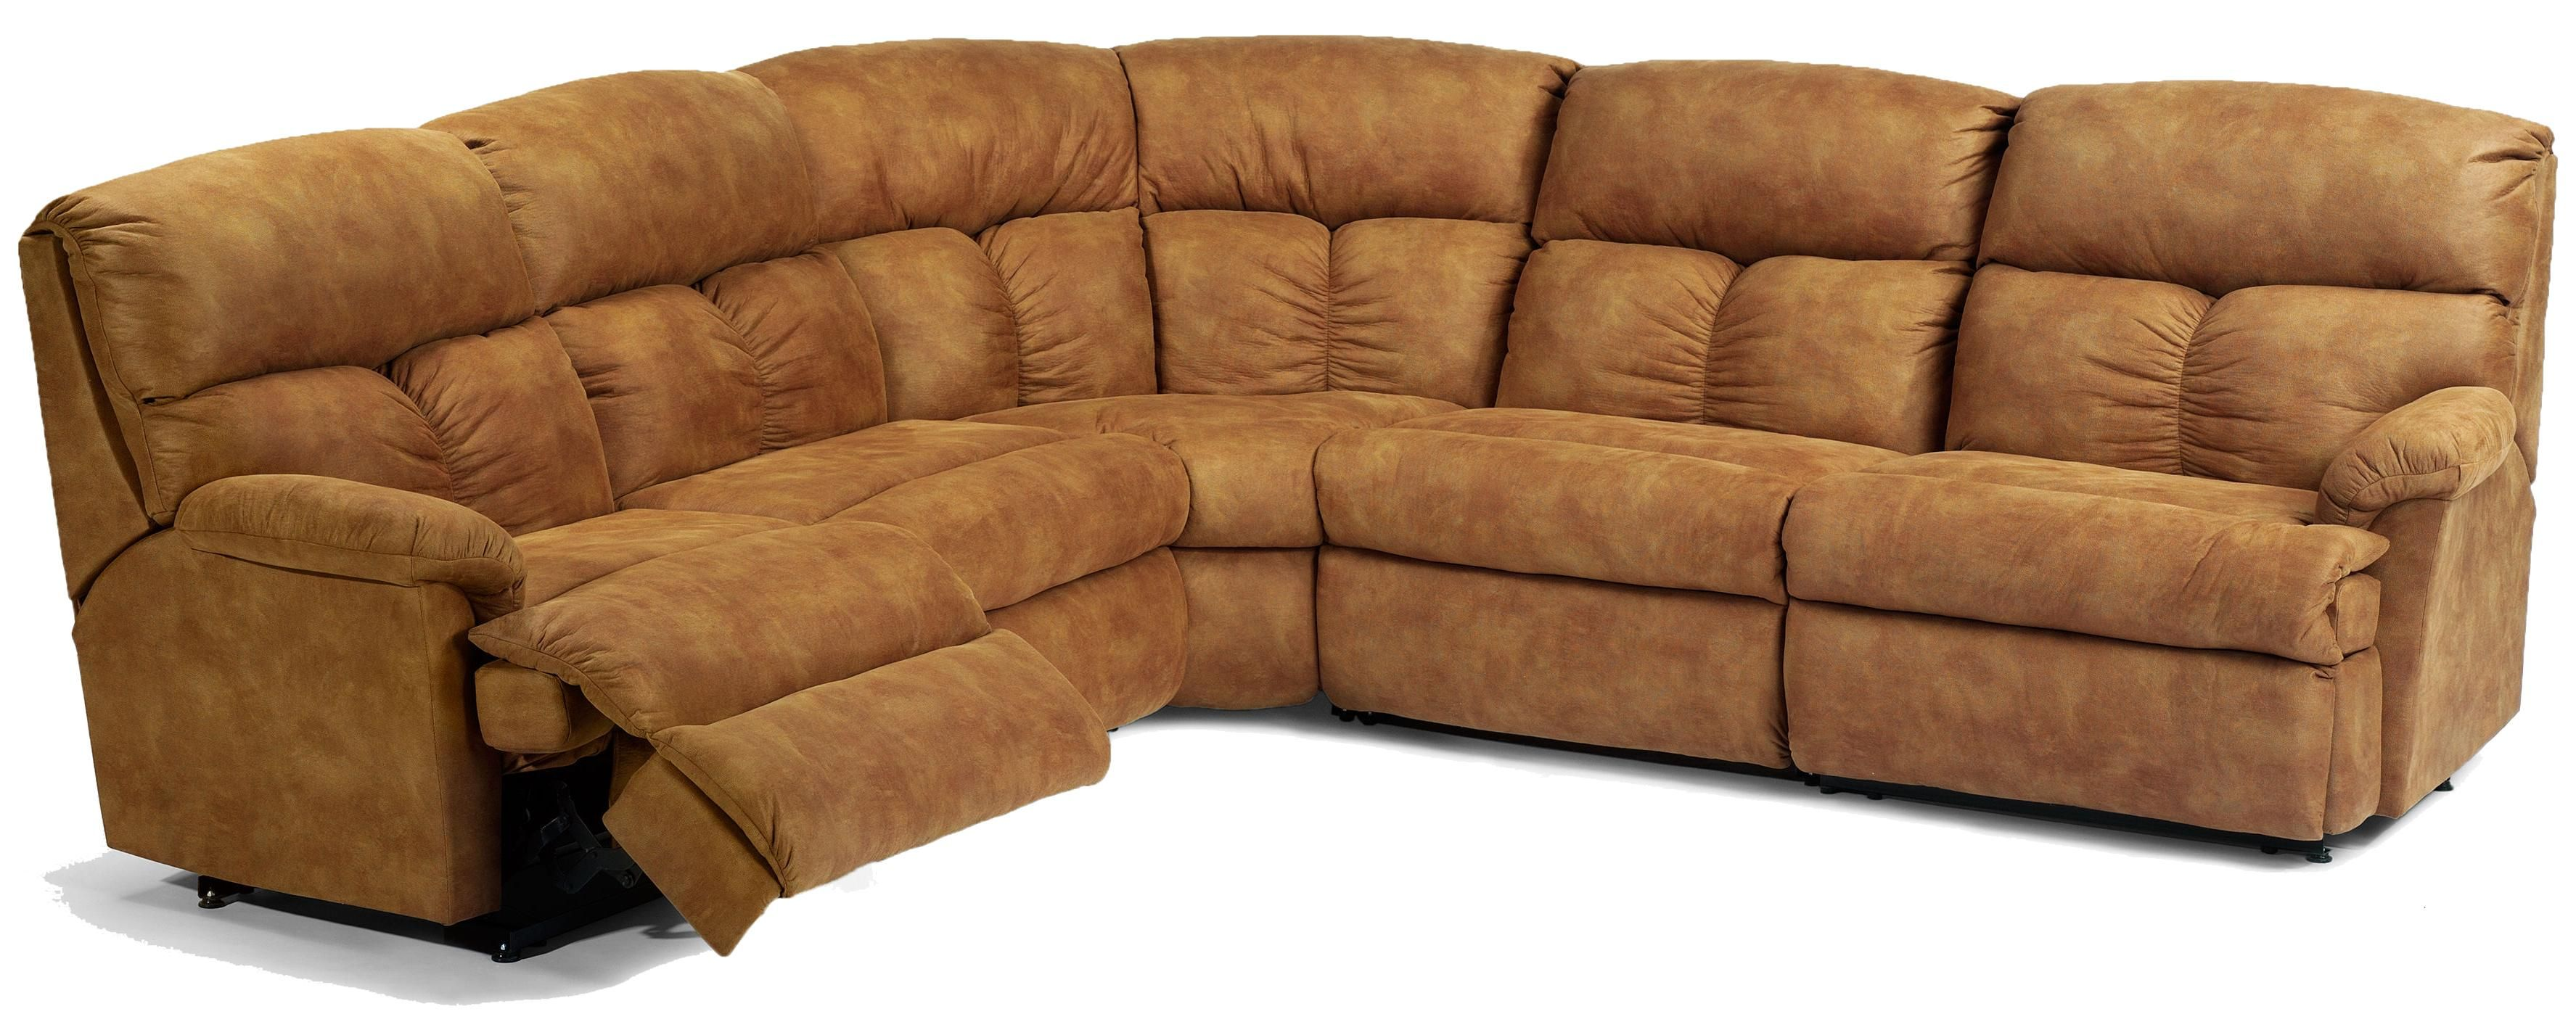 Astounding Triton Reclining Sofa Sectional By Flexsteel Furniture Gmtry Best Dining Table And Chair Ideas Images Gmtryco